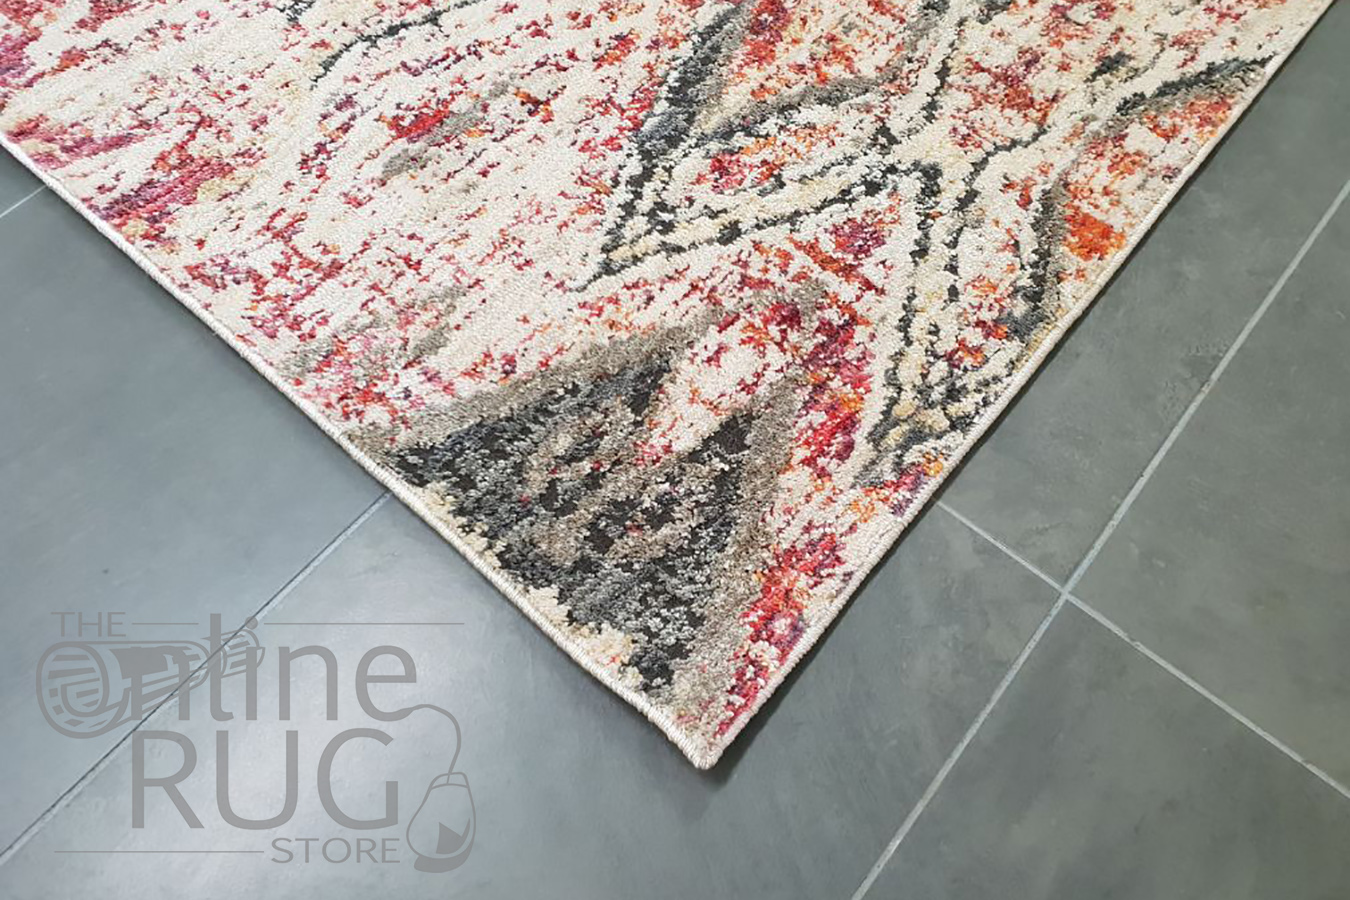 Bella Rust and Prints Distressed Vintage Rug